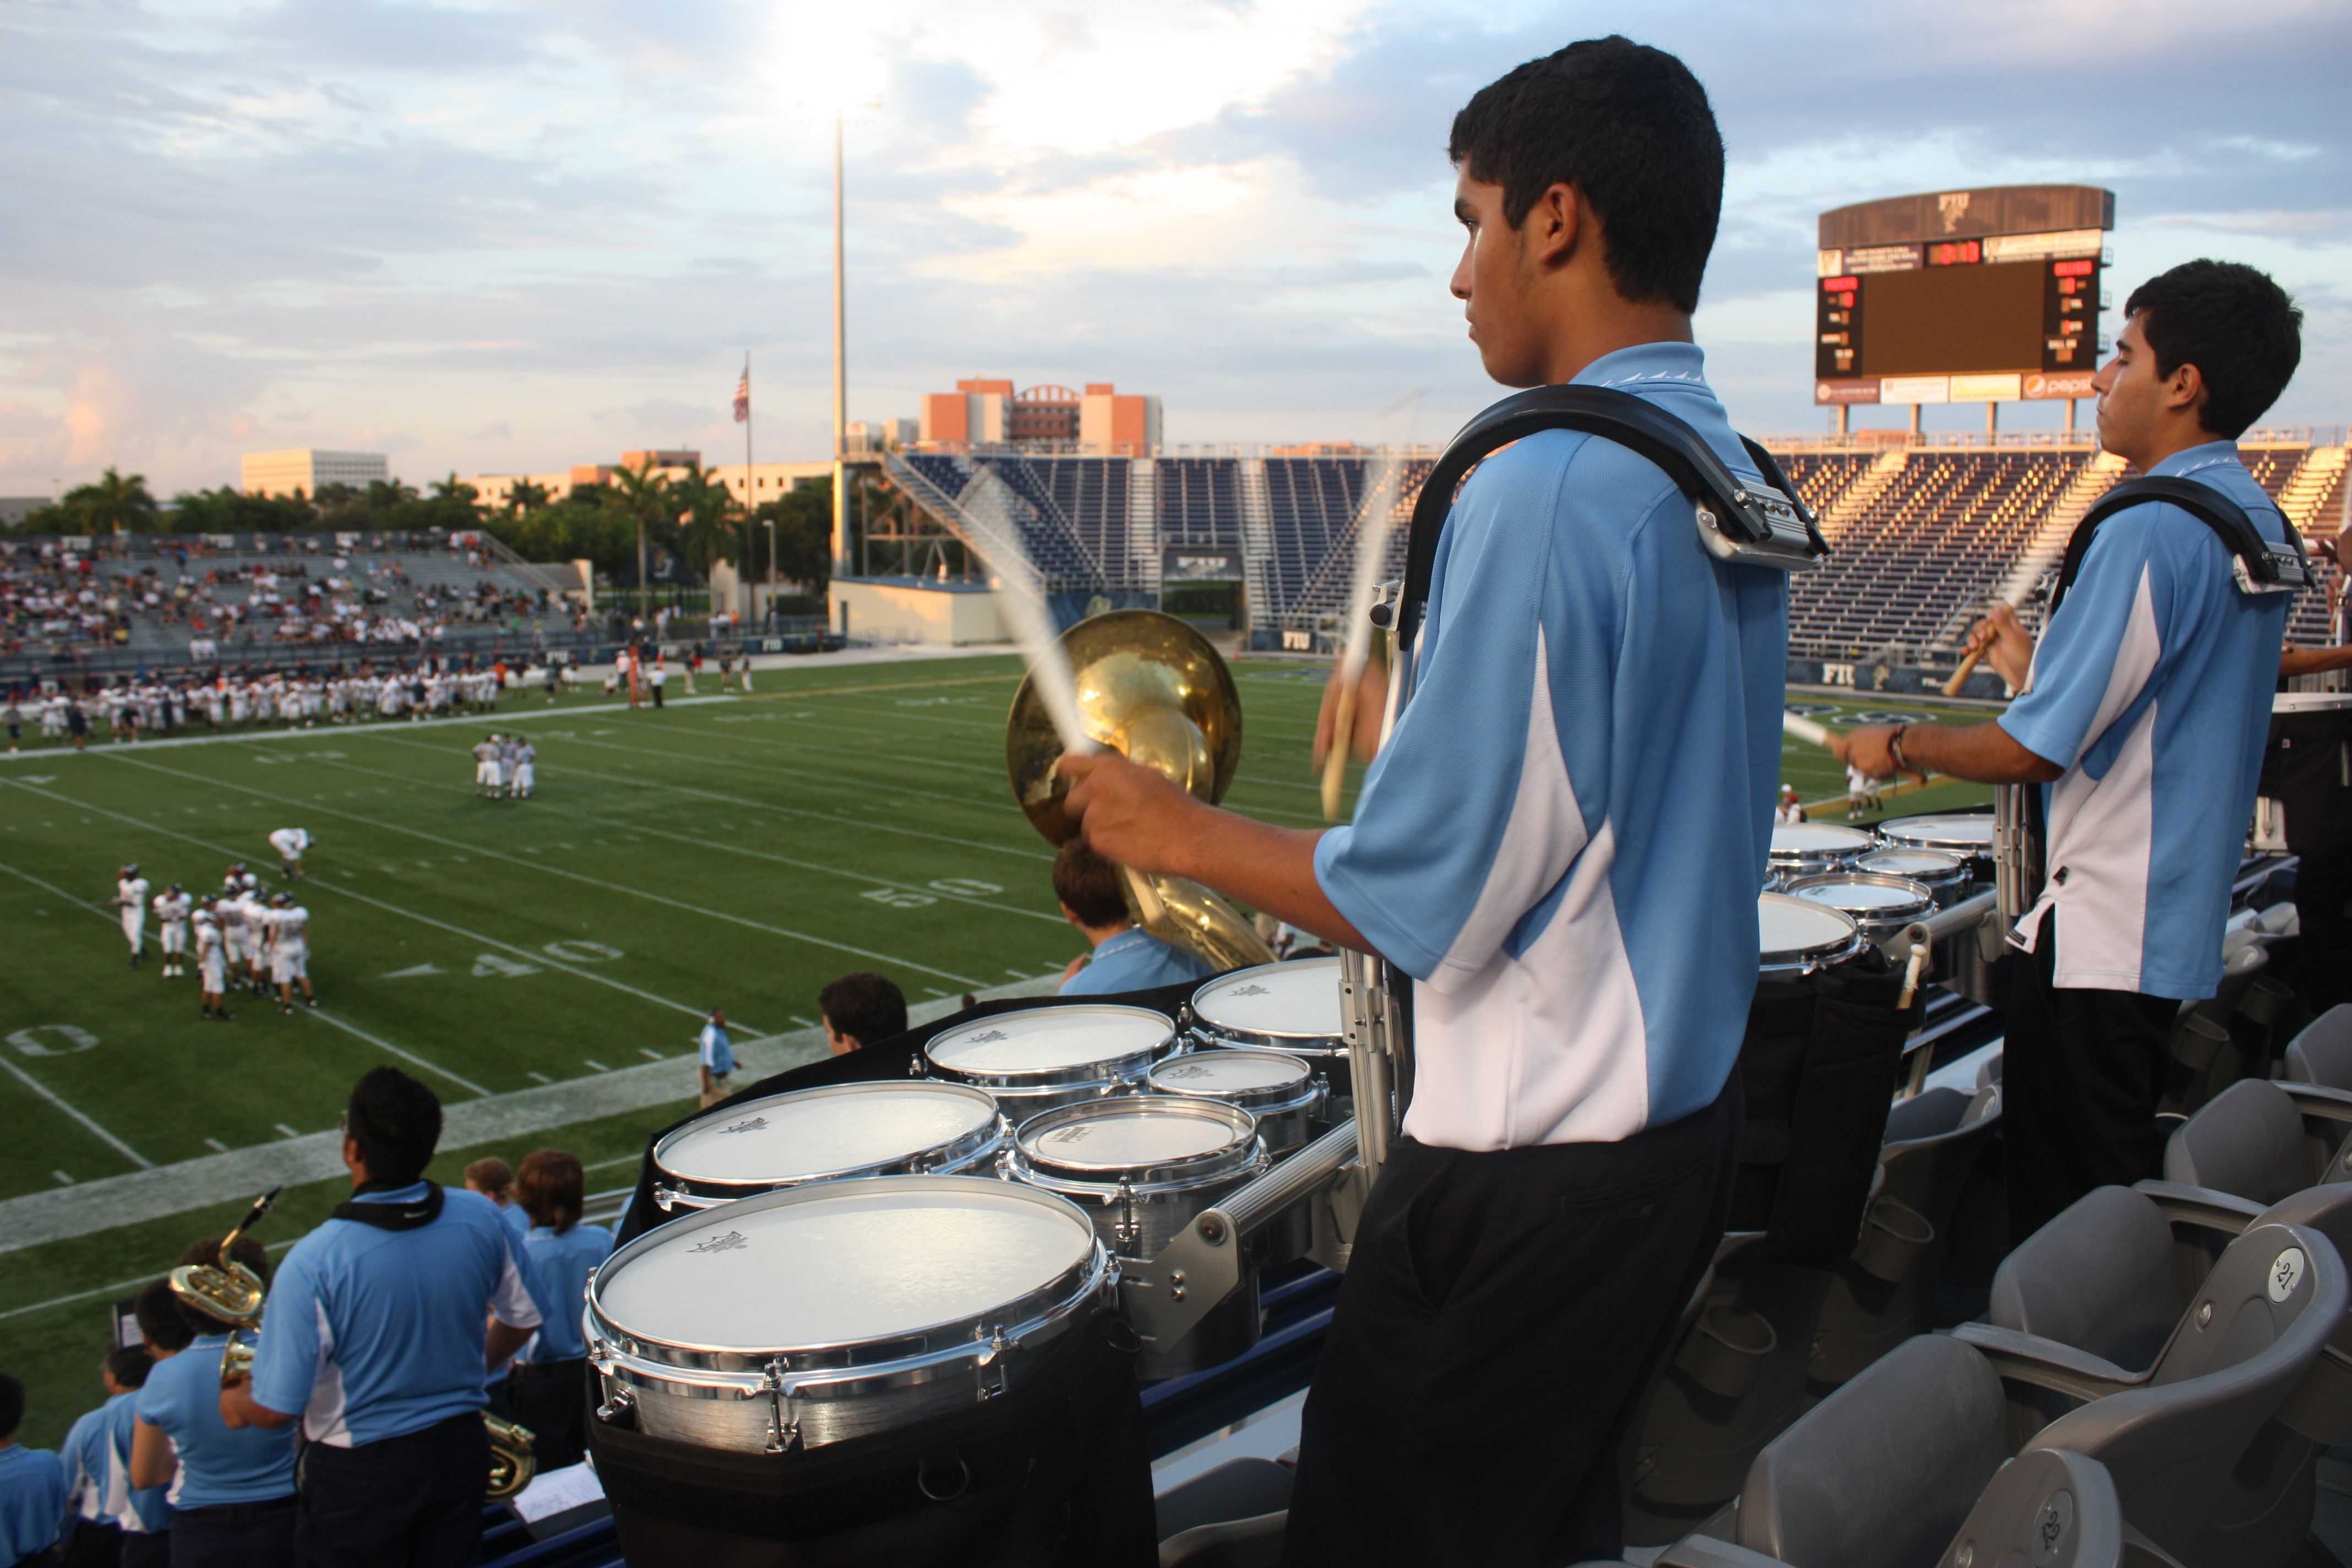 """Junior Alexander Perez plays alongside fellow drum-liners at a football game. Perez always enjoys watching the scene from up above. """"High school seems so great while standing up in the bleachers,"""" Perez said."""